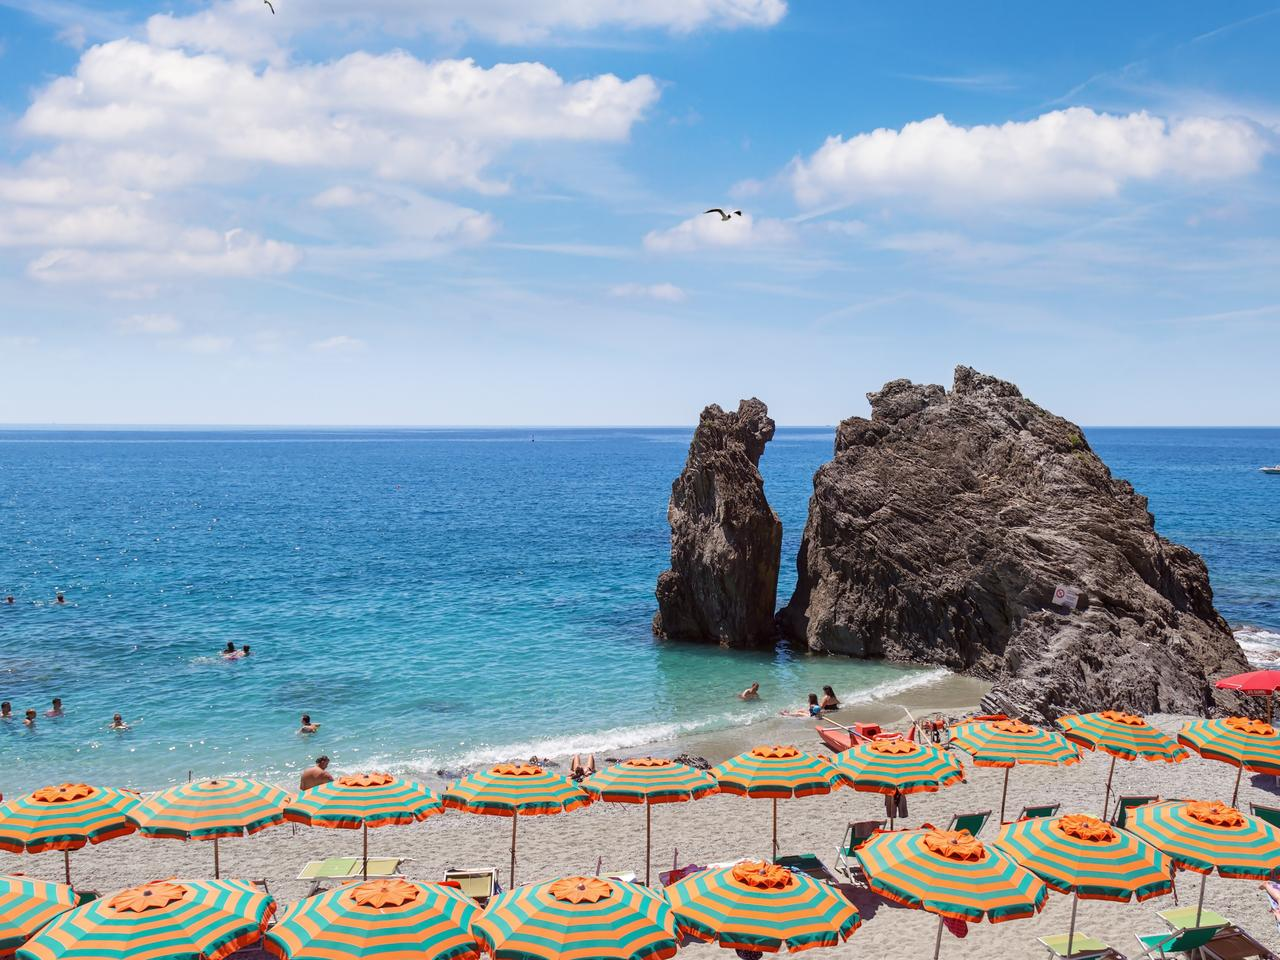 Beautiful view of beach in village of Monterosso. Sundy beach with cloud sky.